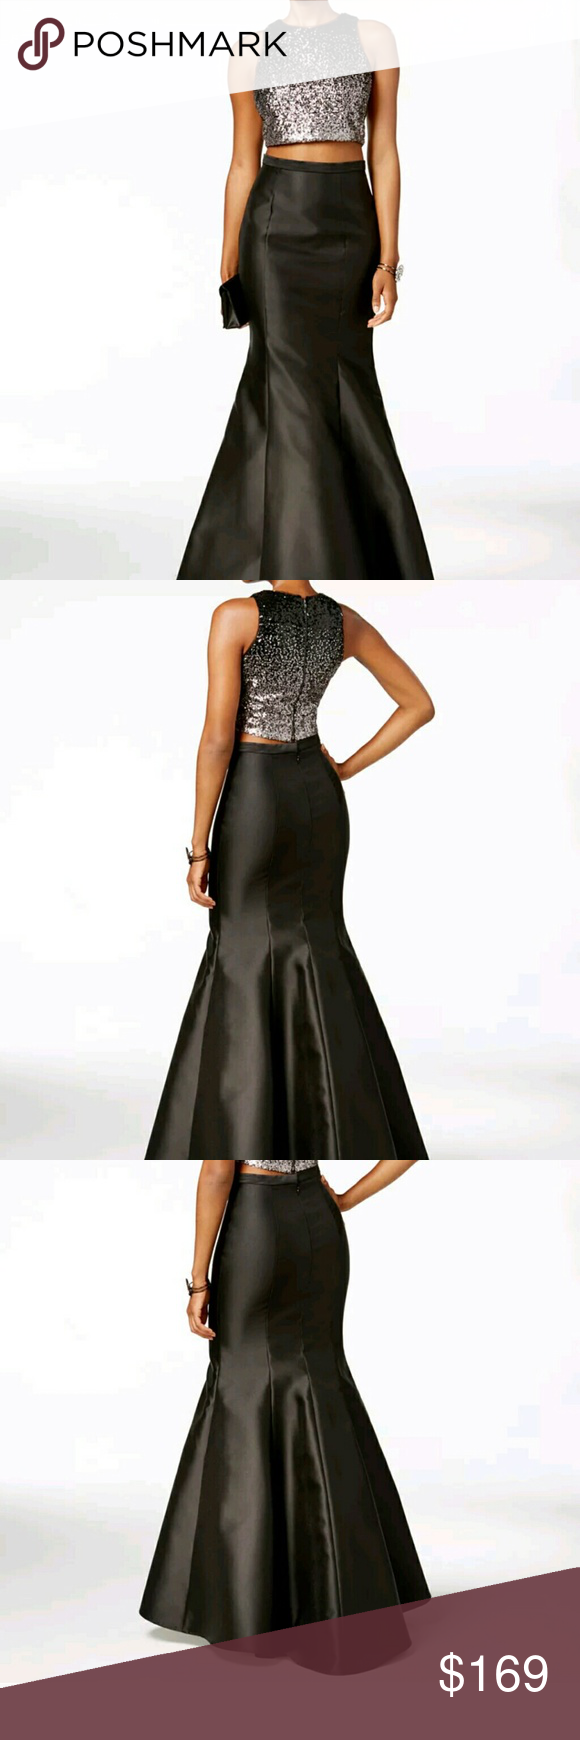 Xscape pc embellished gown nwt d gowns and dresses